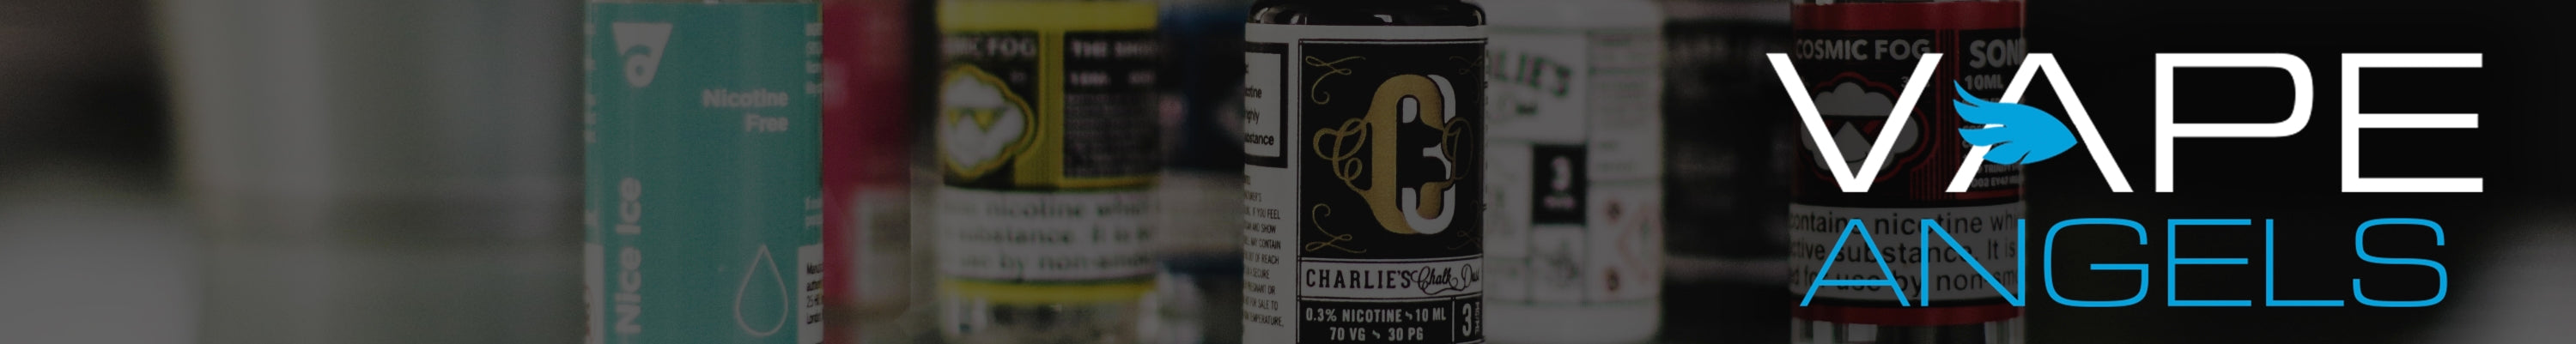 Vape Angels News e-Liquids Milton Keynes Vaping Delivery UK